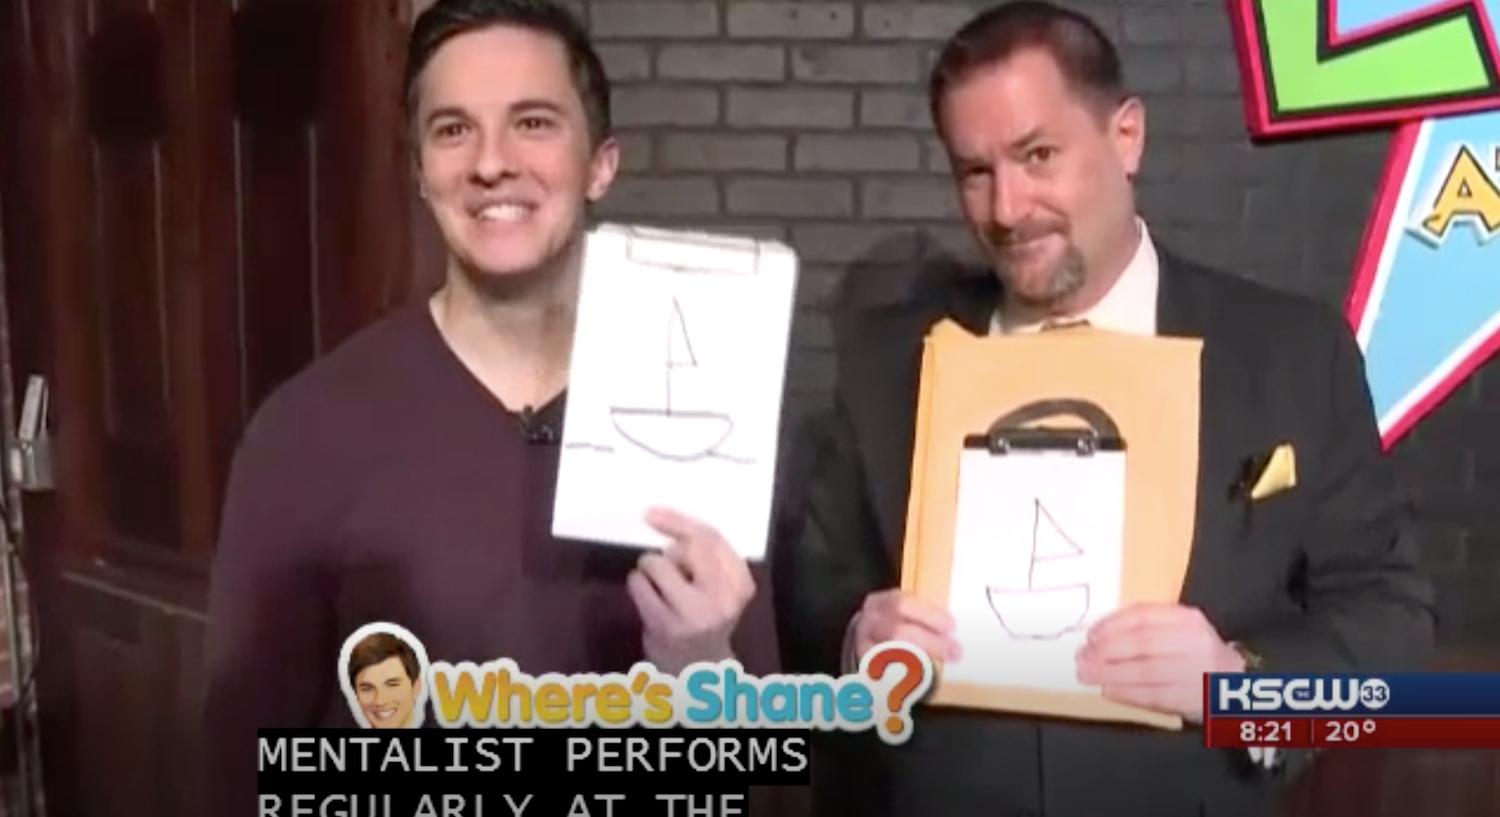 Curtis The Mentalist draws an image that Shane Konicki was merely thinking about on KWCH 12 News Wheres Shane segment at the Loony Bin Comedy Club in Wichita, Kansas